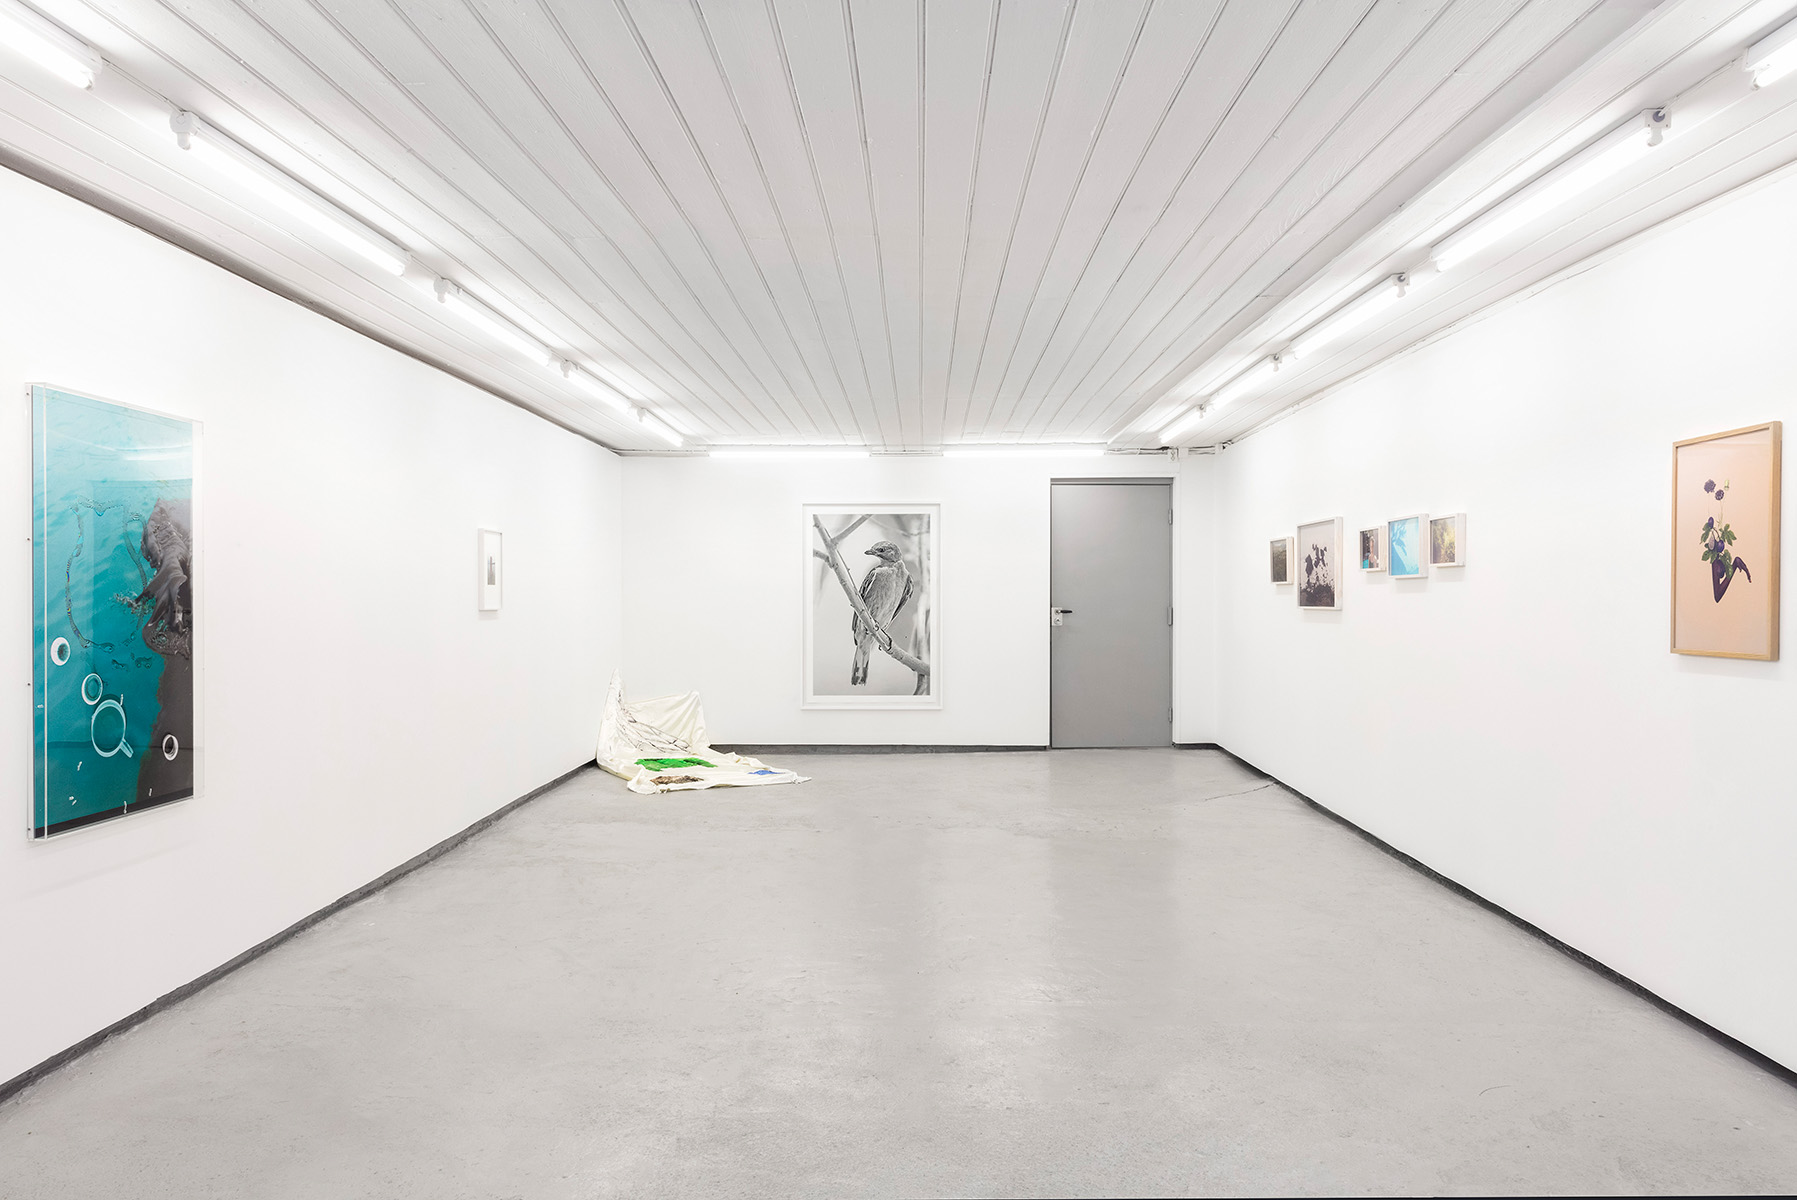 National Juried Spring Exhibition at MELK 2017 installation view